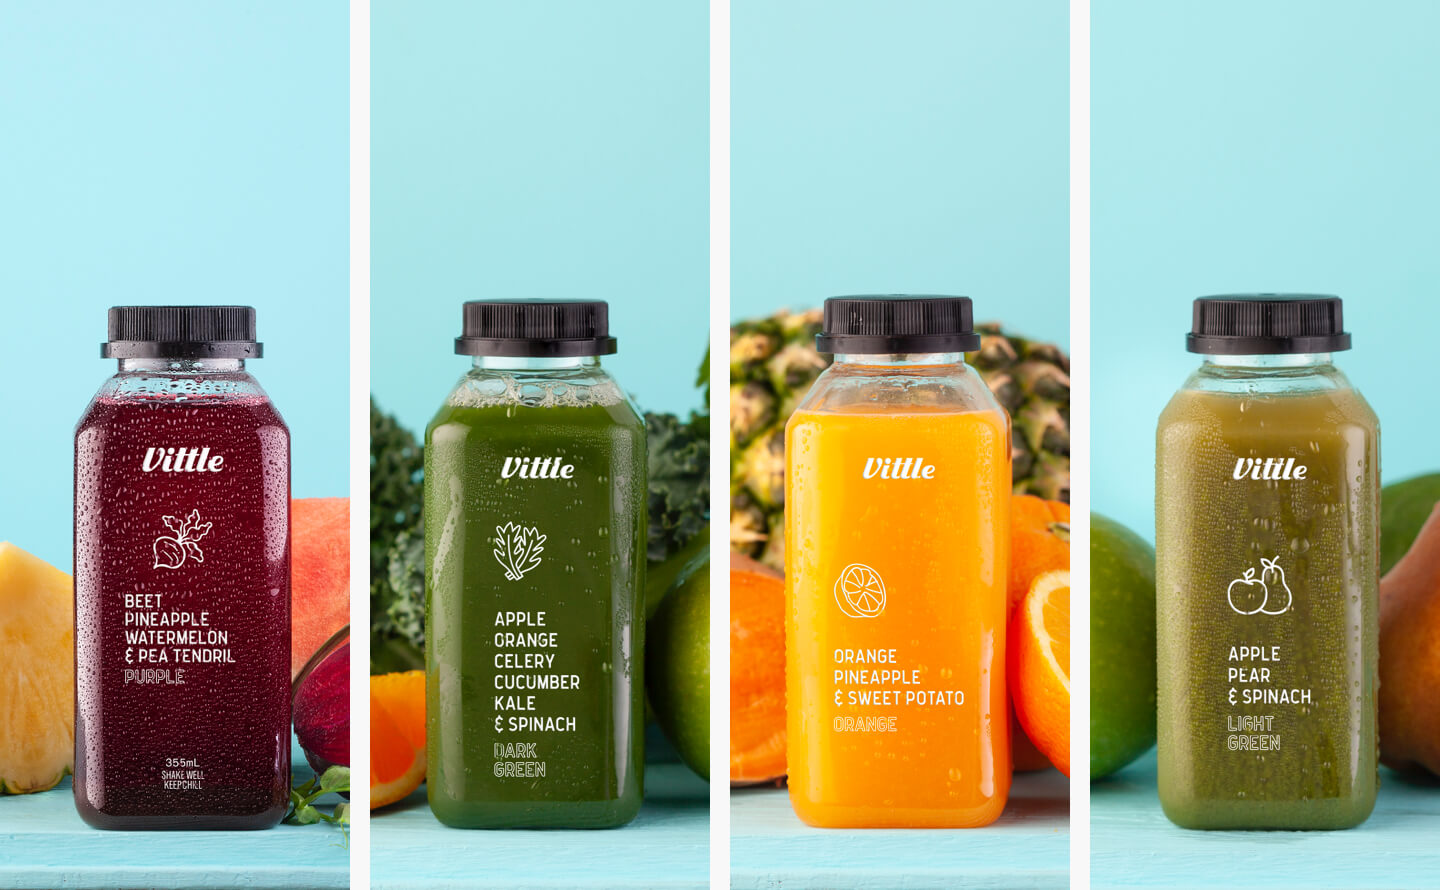 Pair cold-pressed juices with your meals starting at $6